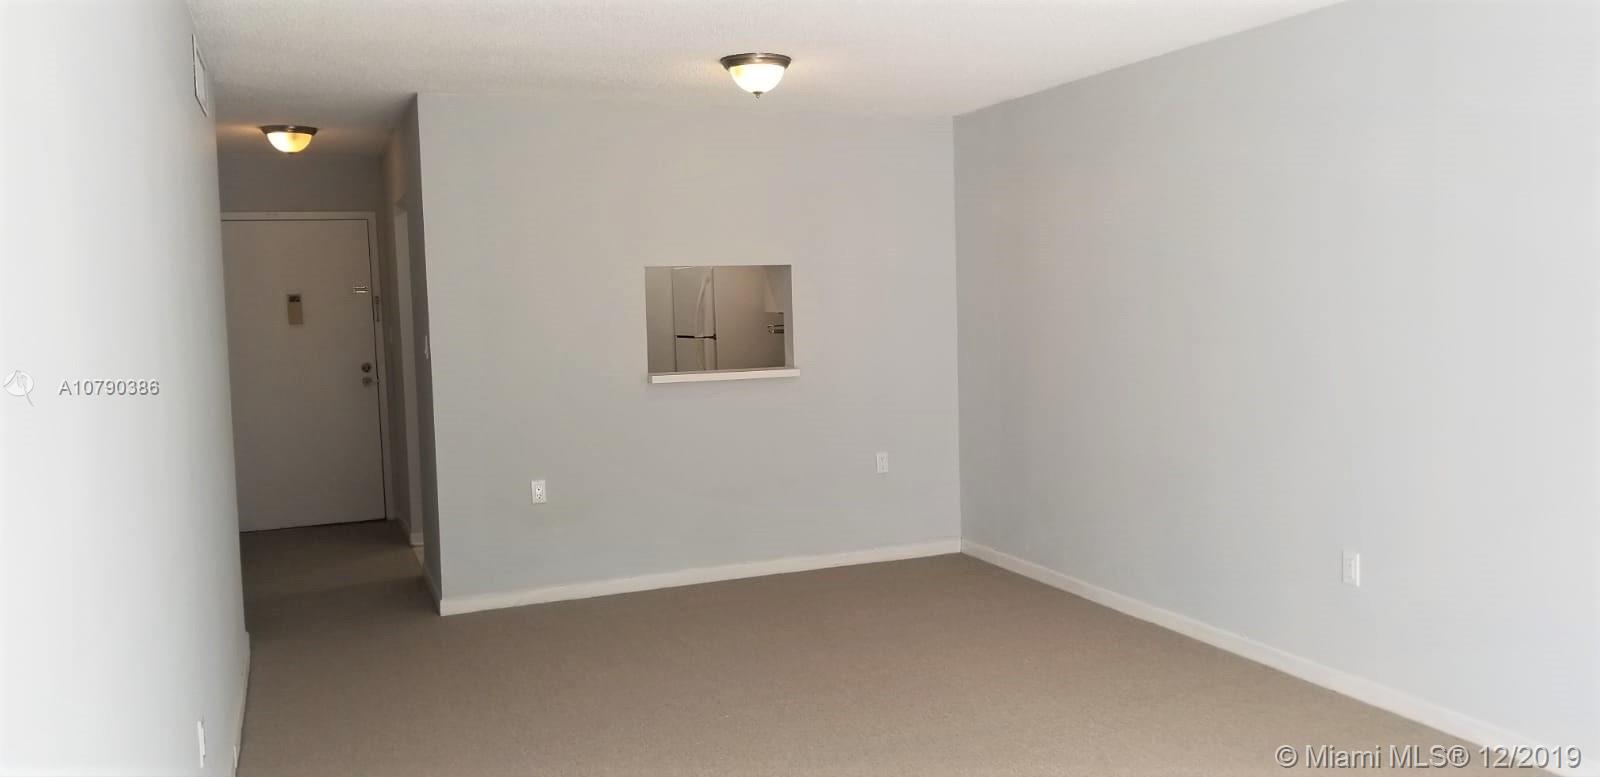 12035 NE 2nd Ave #A209 For Sale A10790386, FL